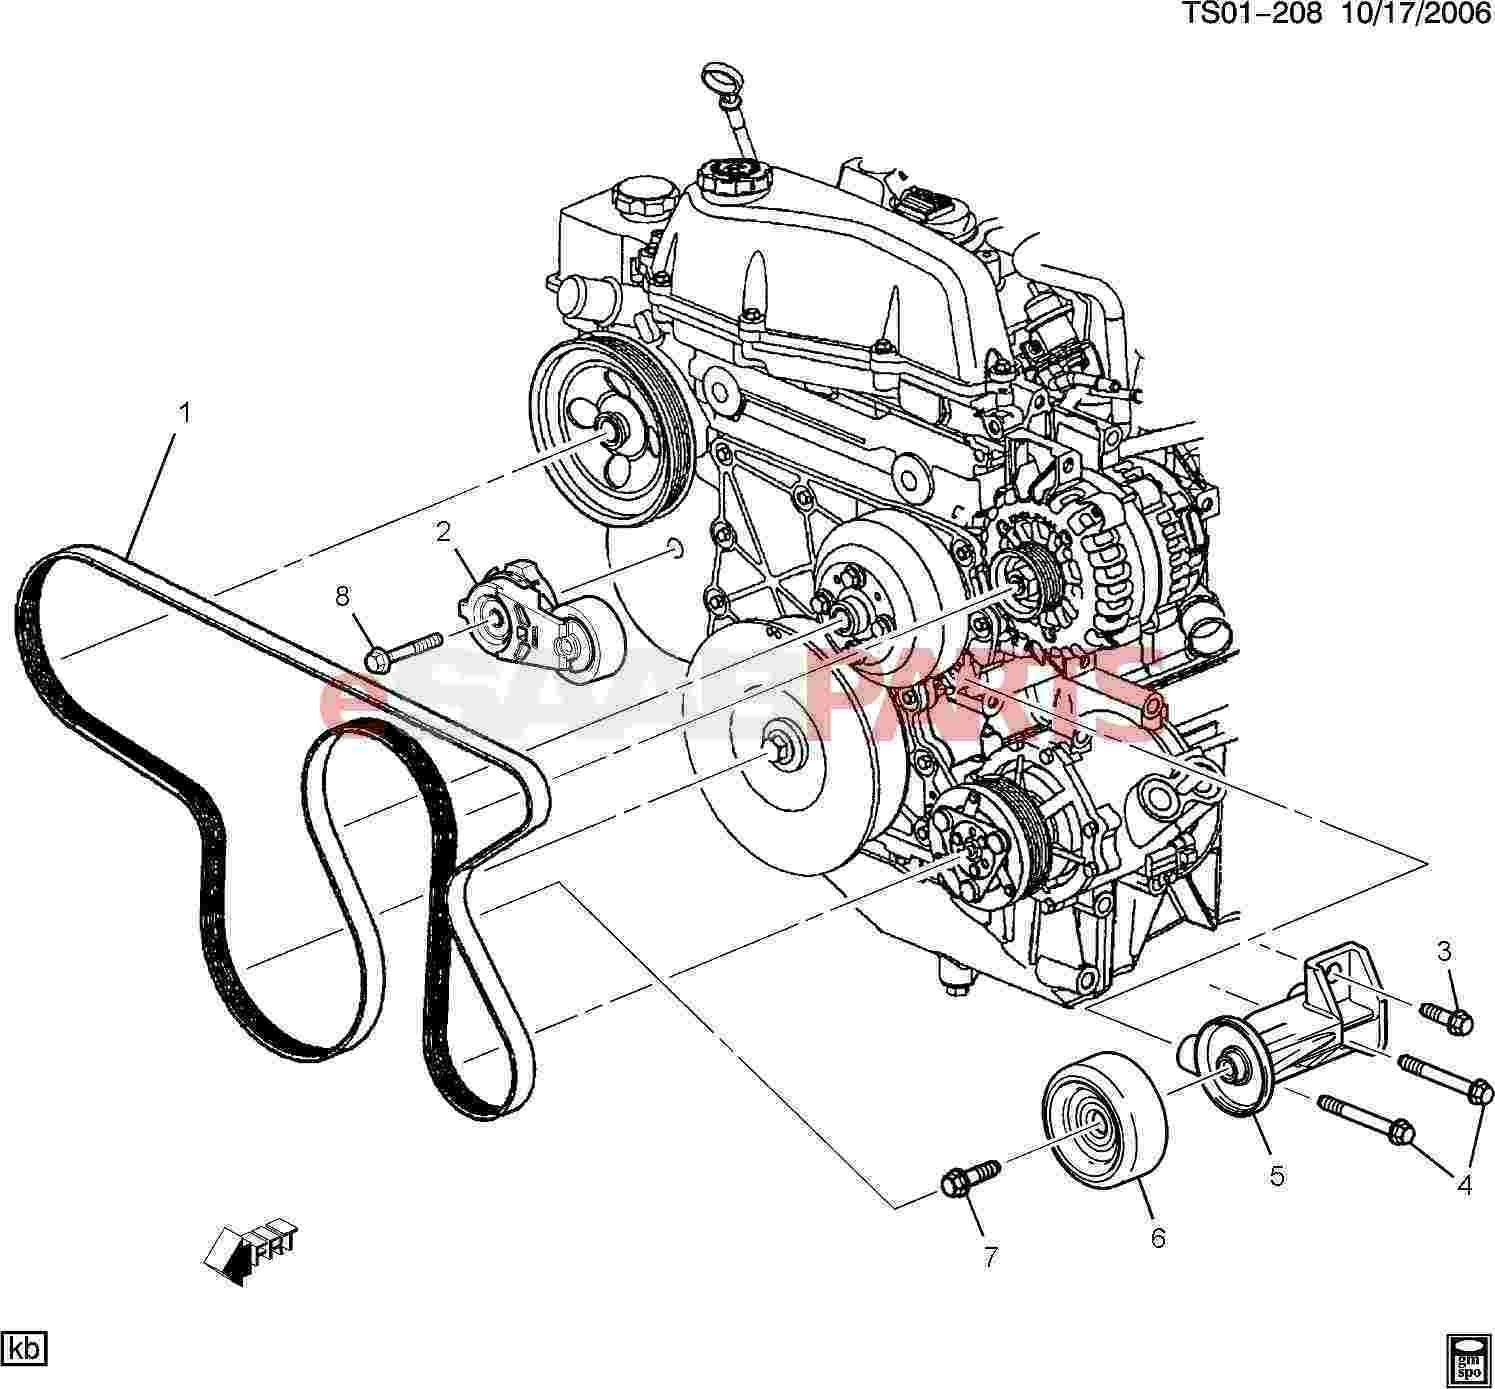 2007 Trailblazer Engine Diagram - Wiring Circuit •